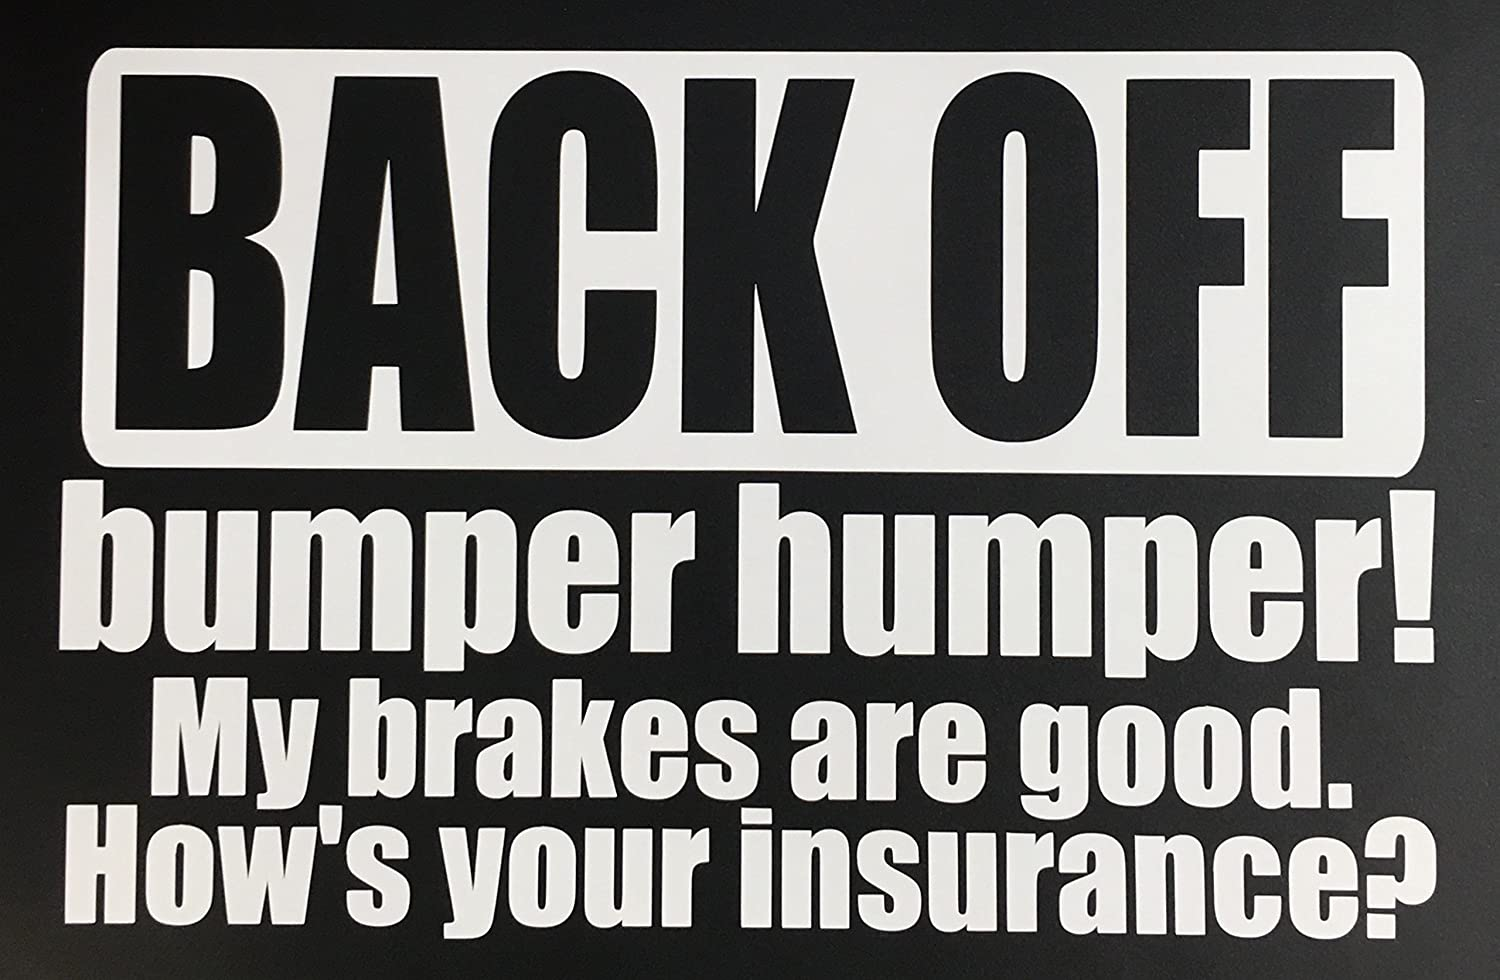 BACK OFF My brakes are good My brakes are good Hows your insurance? 8x5.7 bumper humper bumper humper White How/'s your insurance? 8x5.7 Check6 C60337